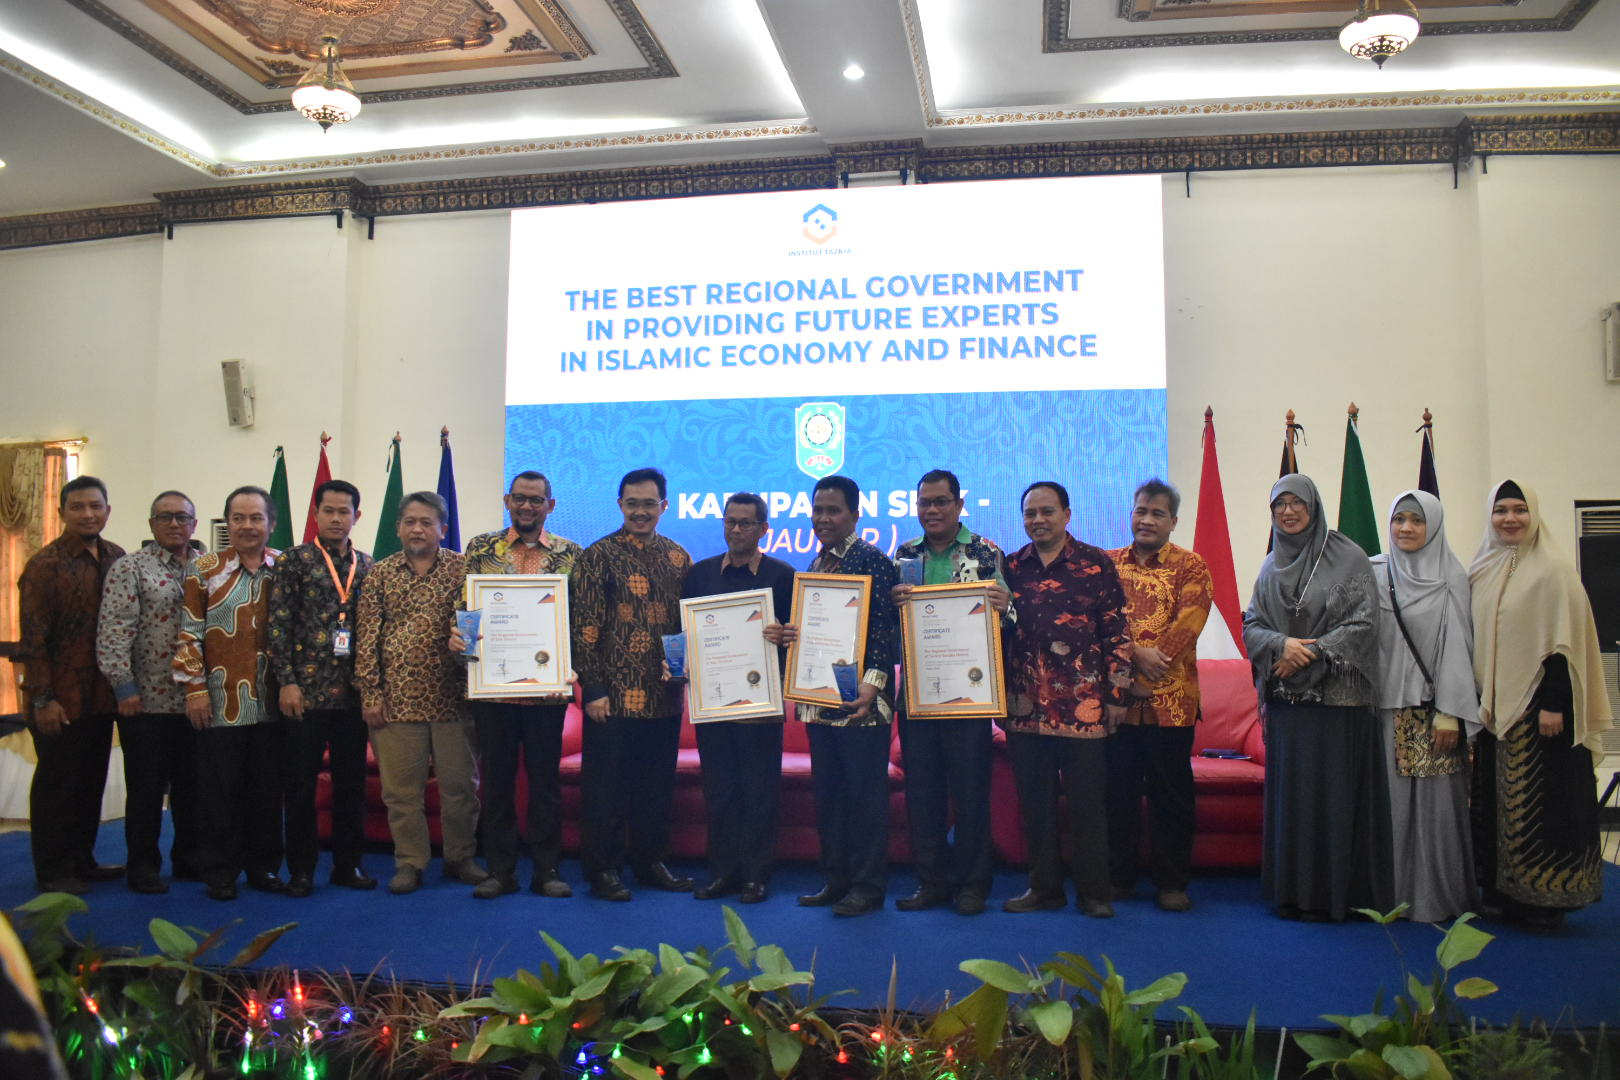 Pemberian Award The best Regional Government in Providing Future Experts in Islamic Economics and Finance